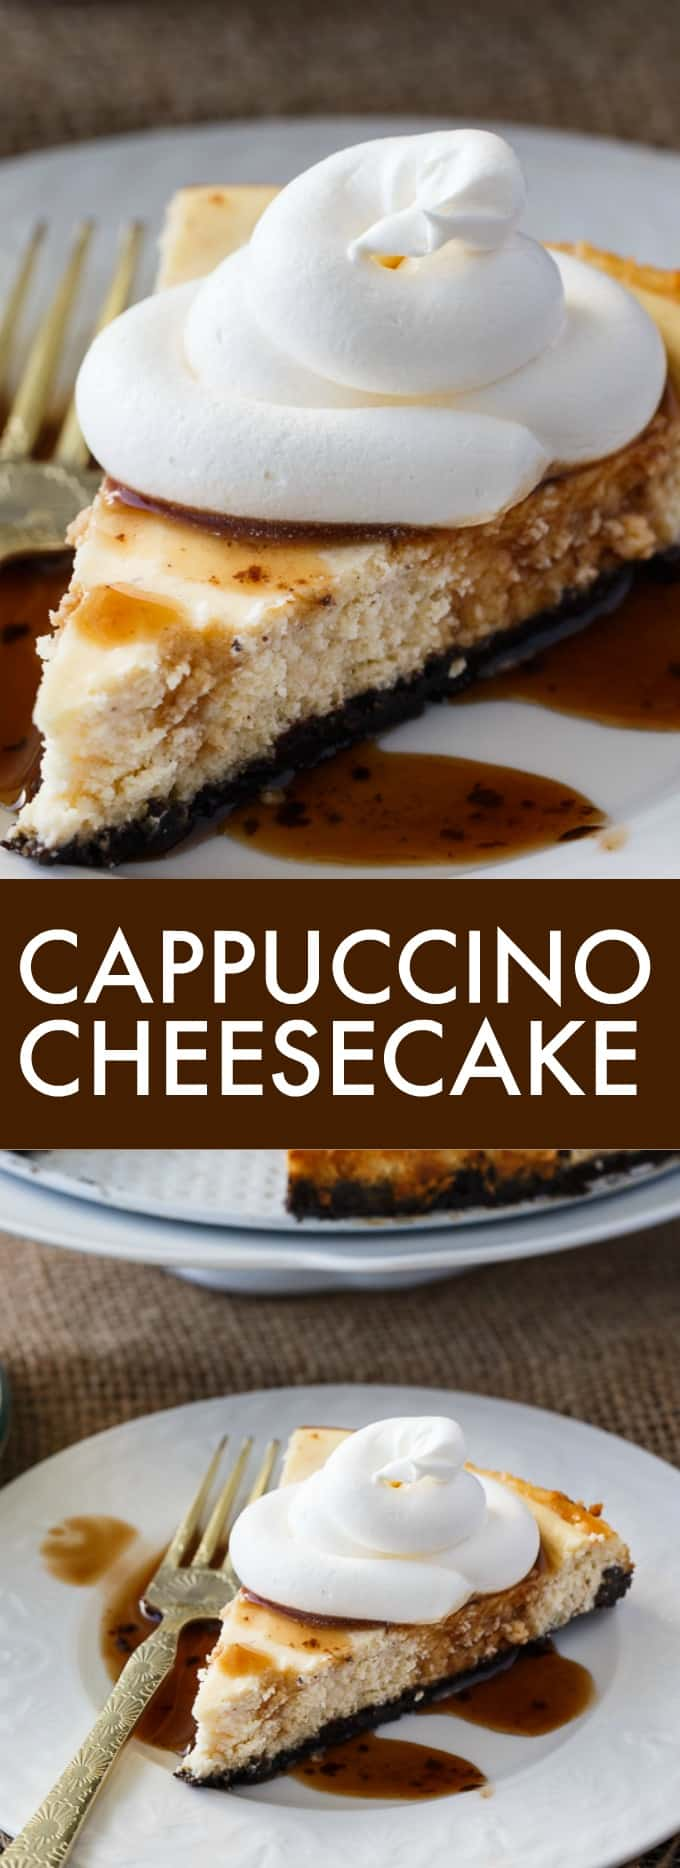 Cappuccino Cheesecake - Rich creamy cappuccino flavoured cheesecake filling is nestled on top of a chocolate Oreo crumb crust.